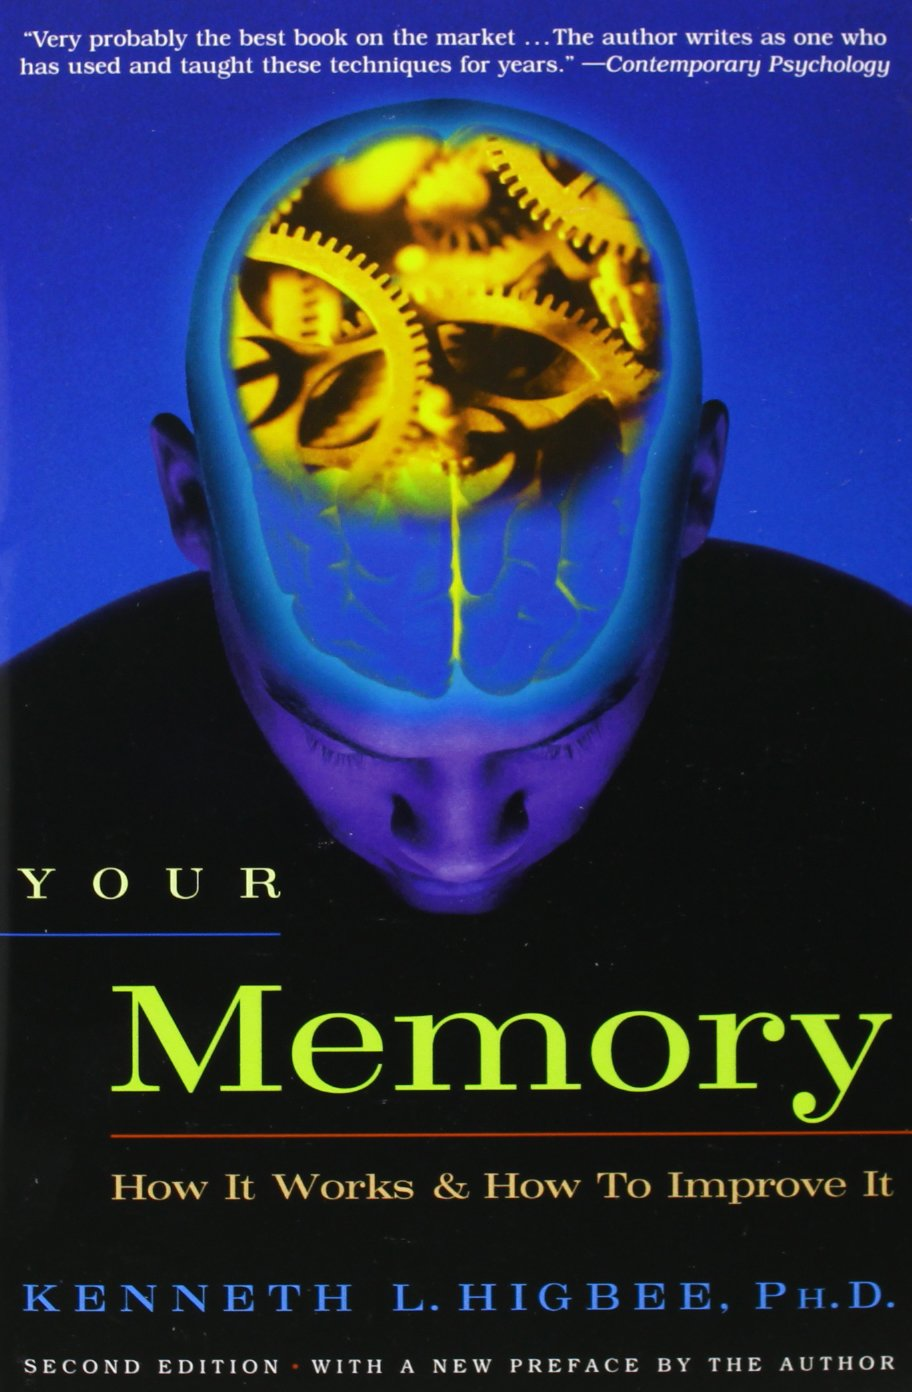 Your Memory How Works Improve